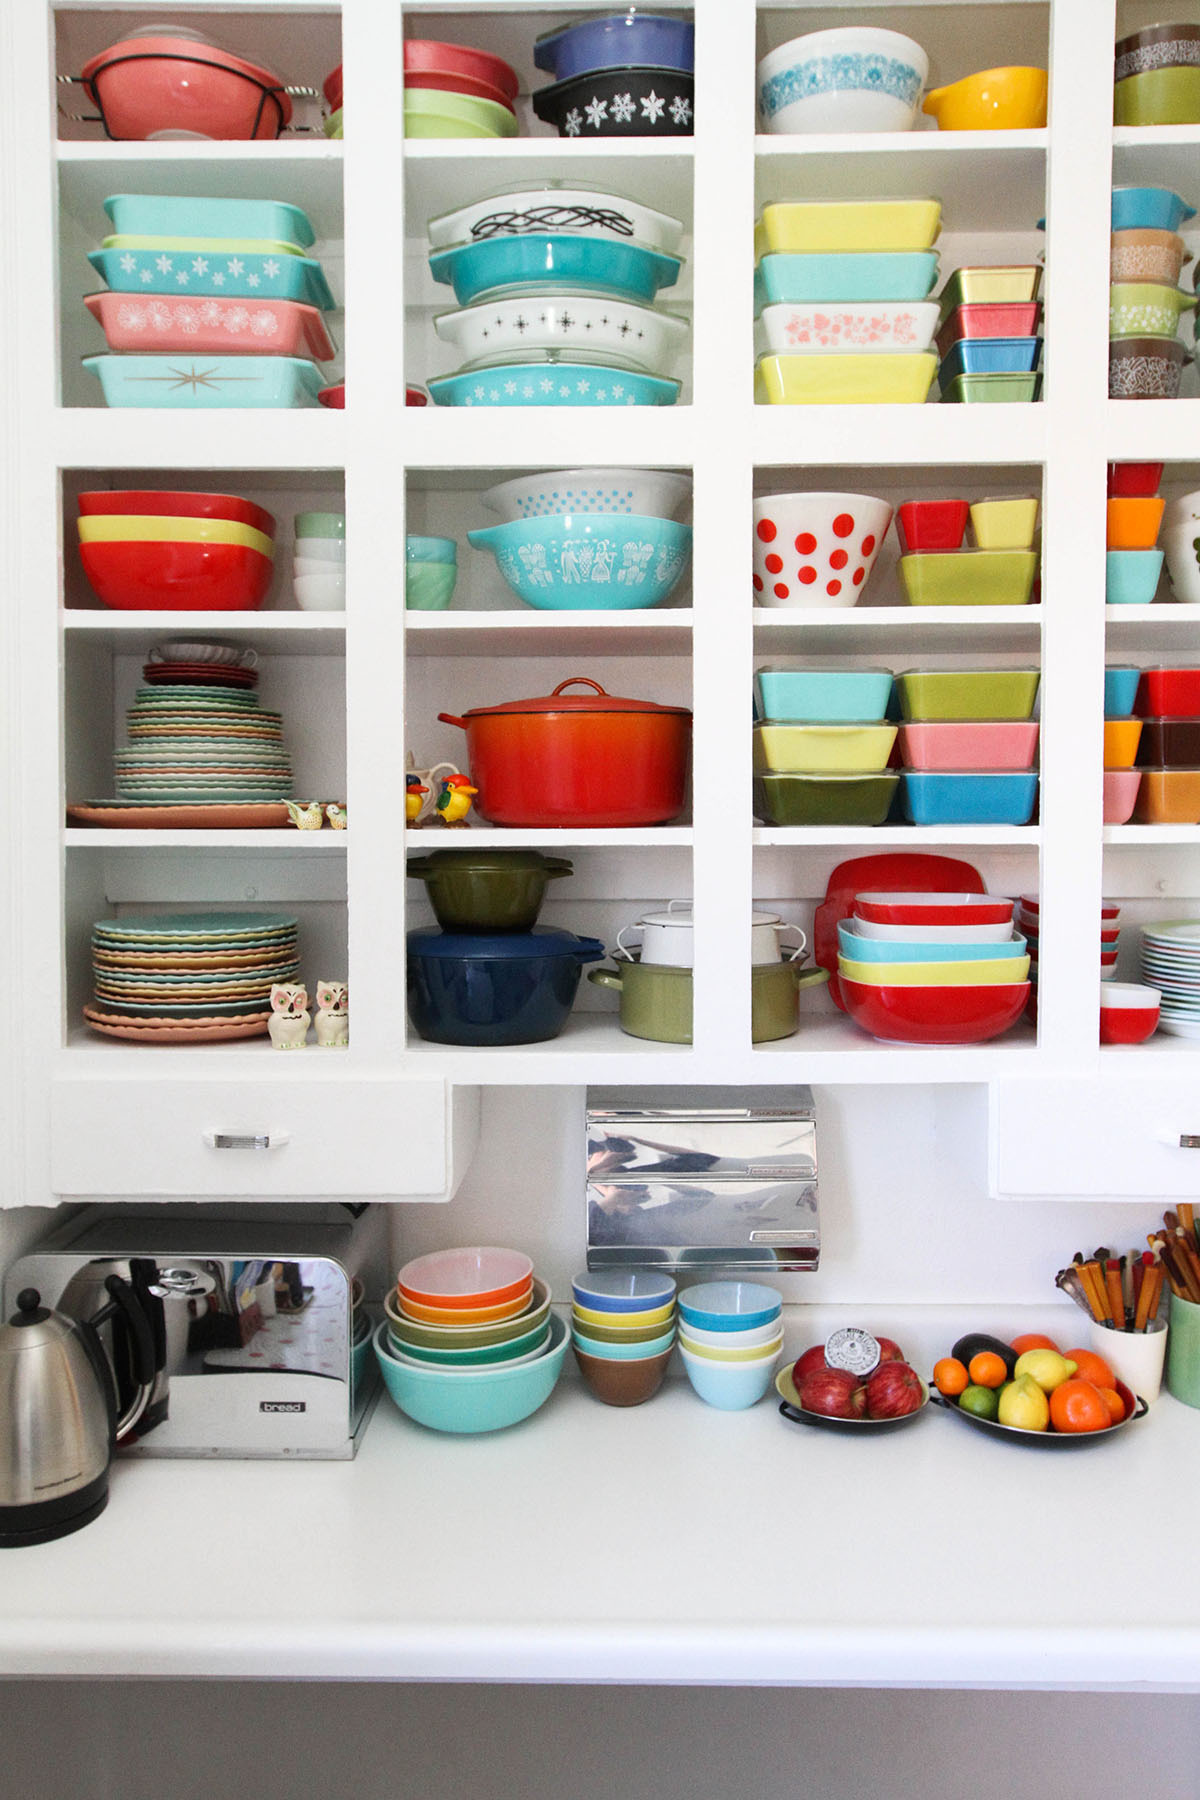 The 52 Best Kitchen Cabinet Organization Ideas Of All Time Apartment Therapy